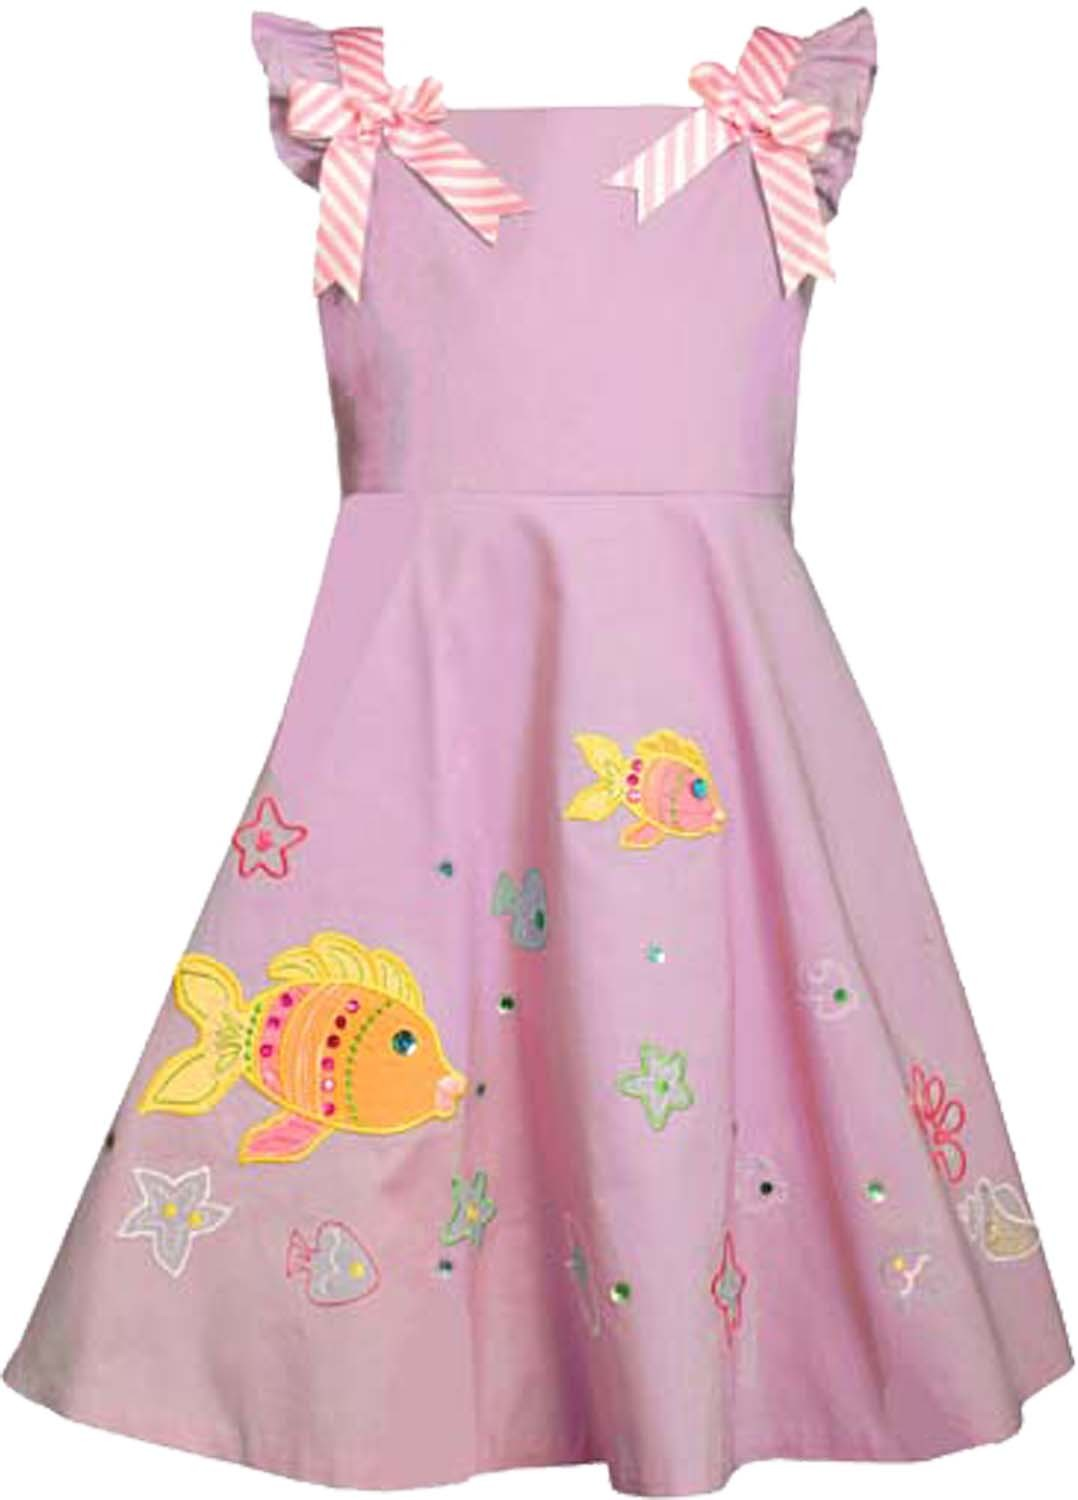 Bonnie Jean Little Girl 2T-6X Pink Fish Applique Fit Flare Cotton Dress